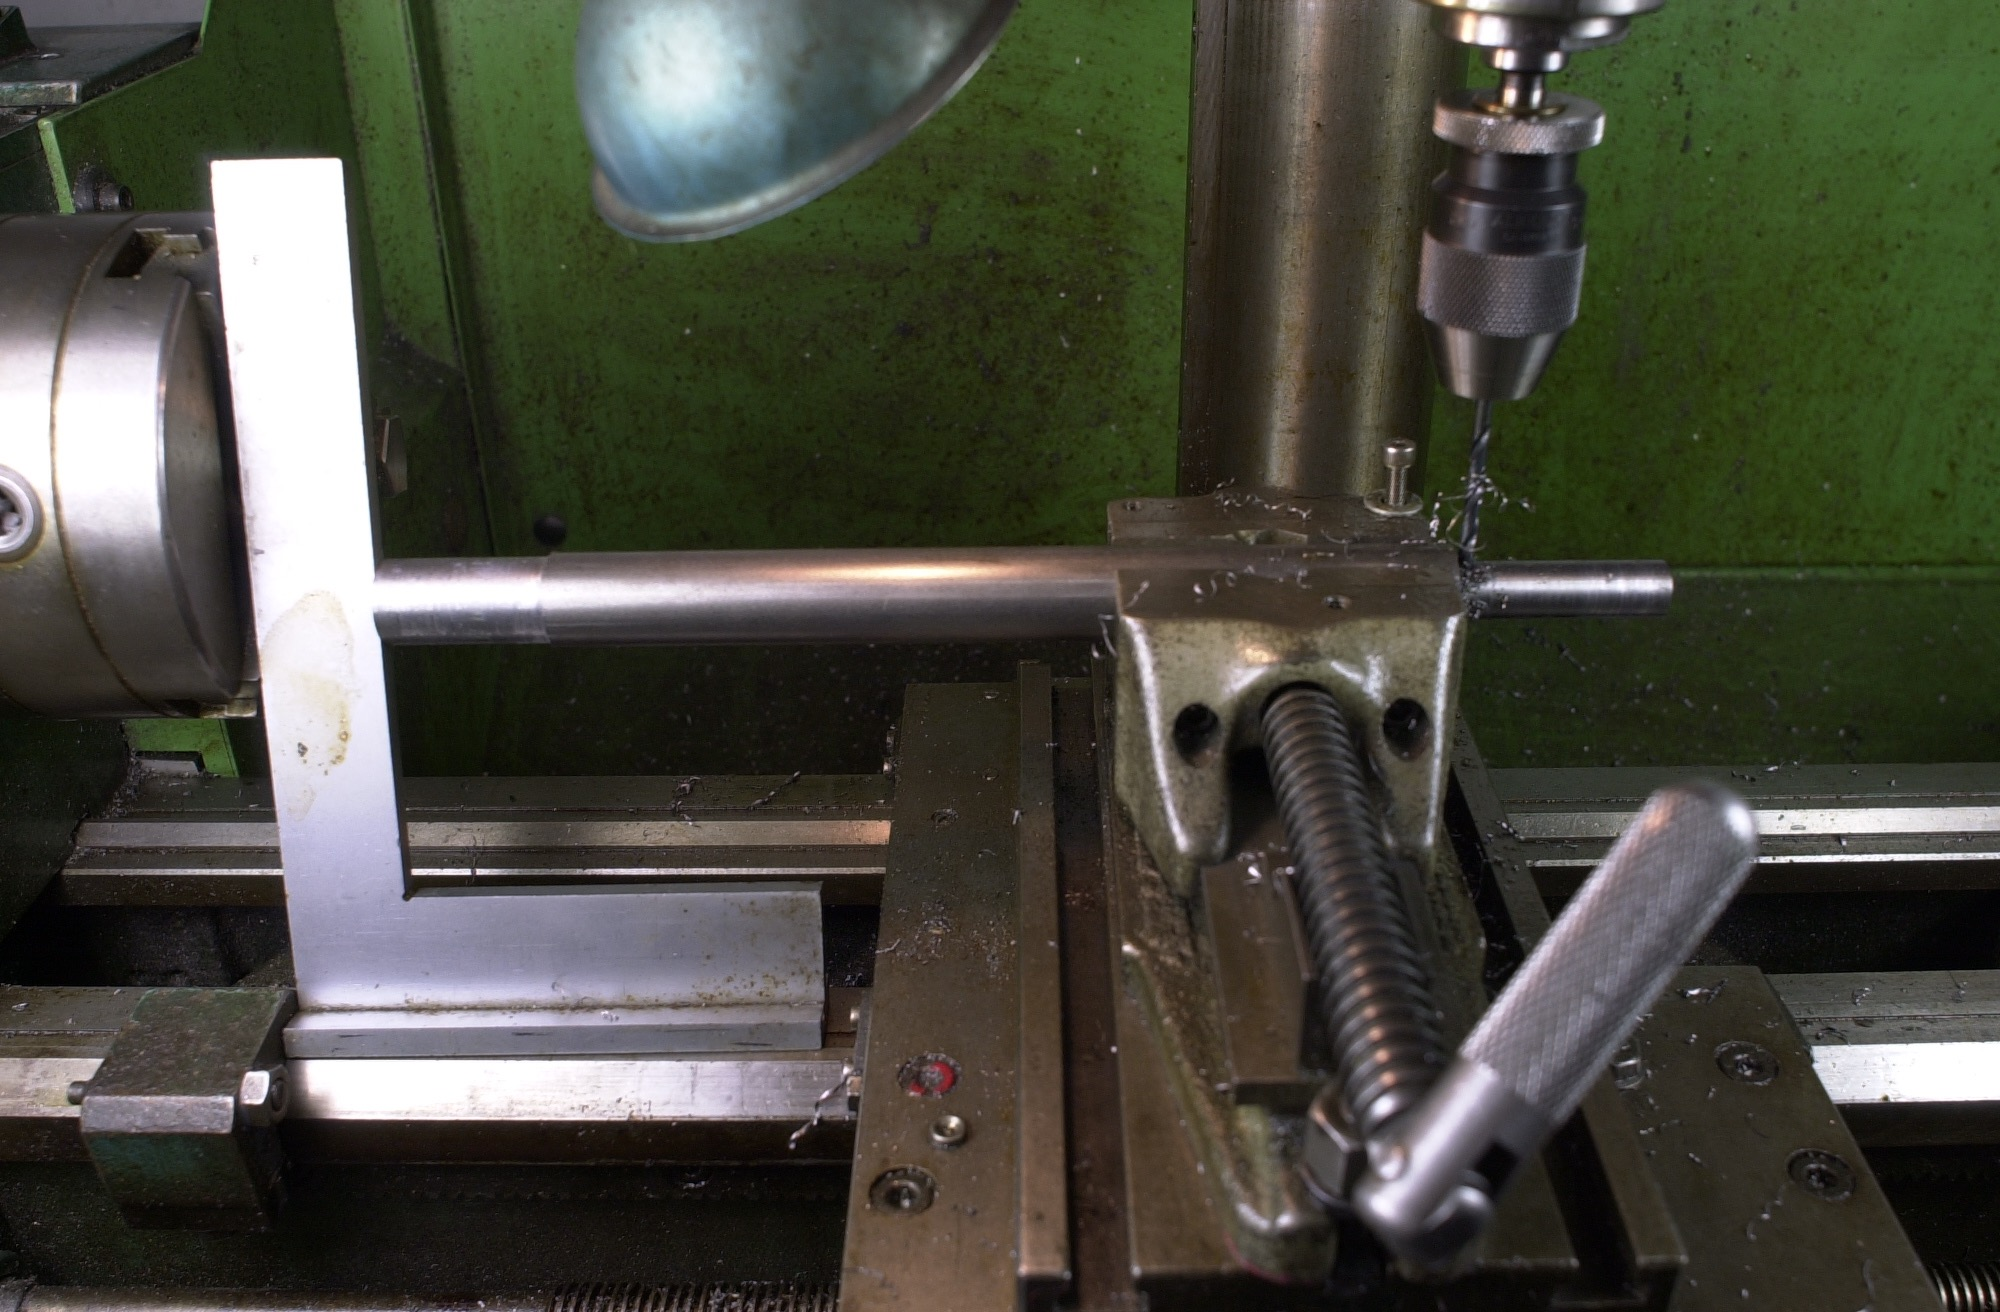 """New longer seat tube reamer arbors to ream for dropper seat posts are in process.  The above photo shows the dowel pin drilling set up.  Once the hole is drilled a 5/32"""" dowel pin is set which secures the Silva HSS helical seat tube reamer."""